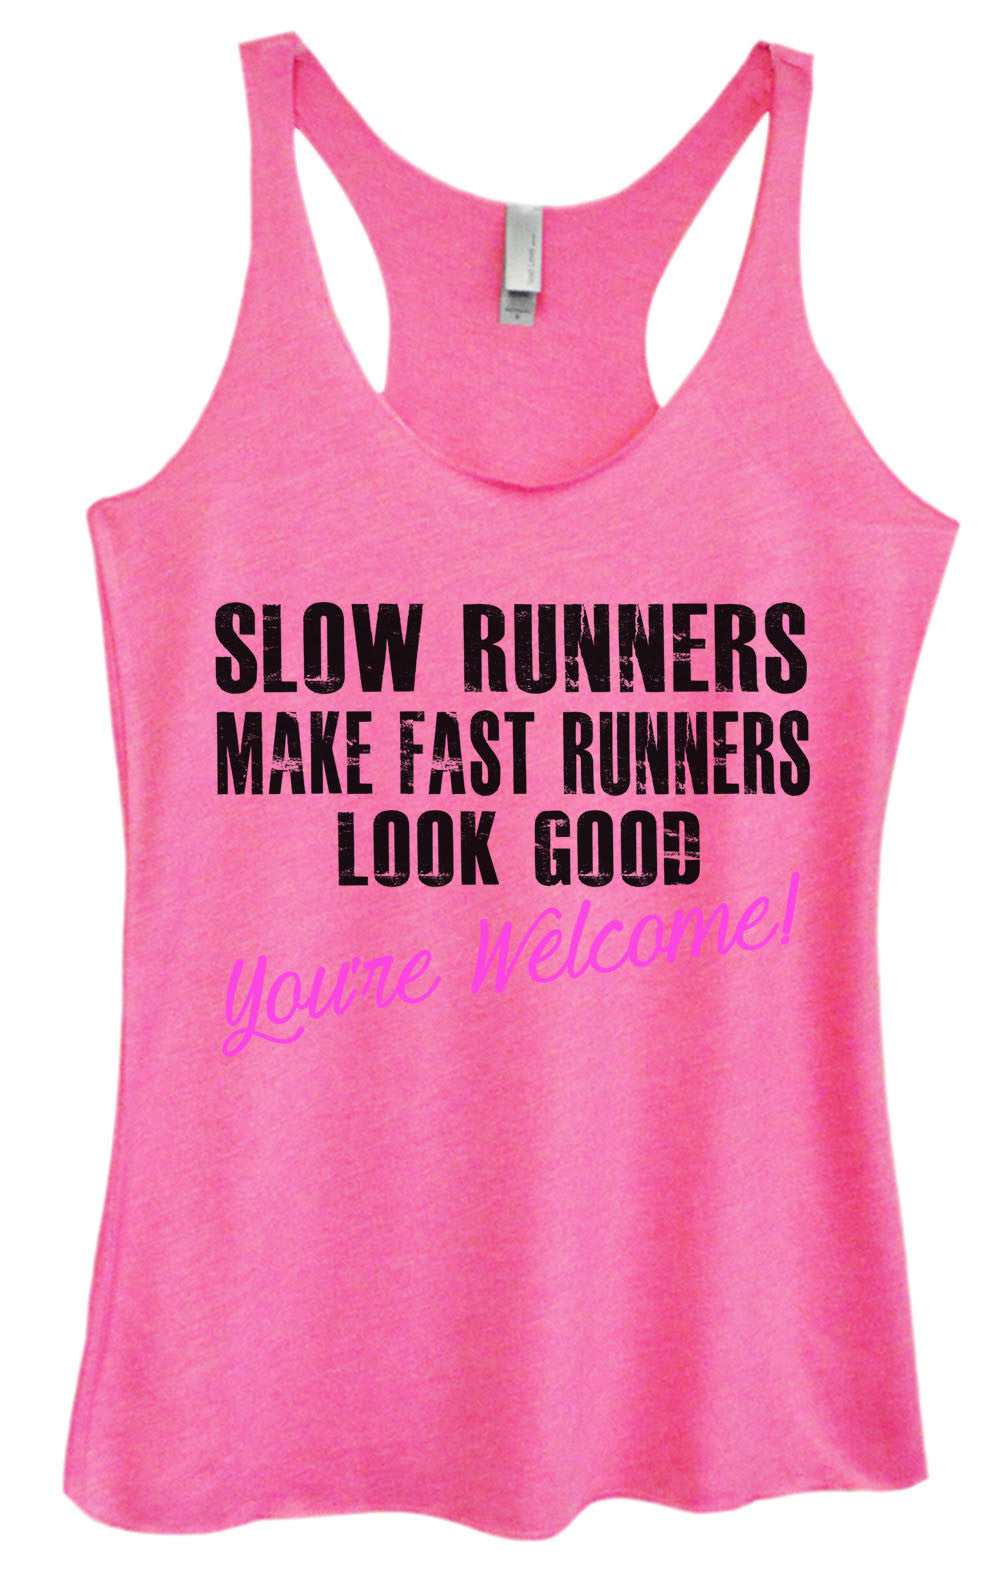 Womens Fashion Triblend Tank Top - Slow Runnres Make Fast Runners Look Good You're Welcome! - Tri-735 - Funny Shirts Tank Tops Burnouts and Triblends  - 1